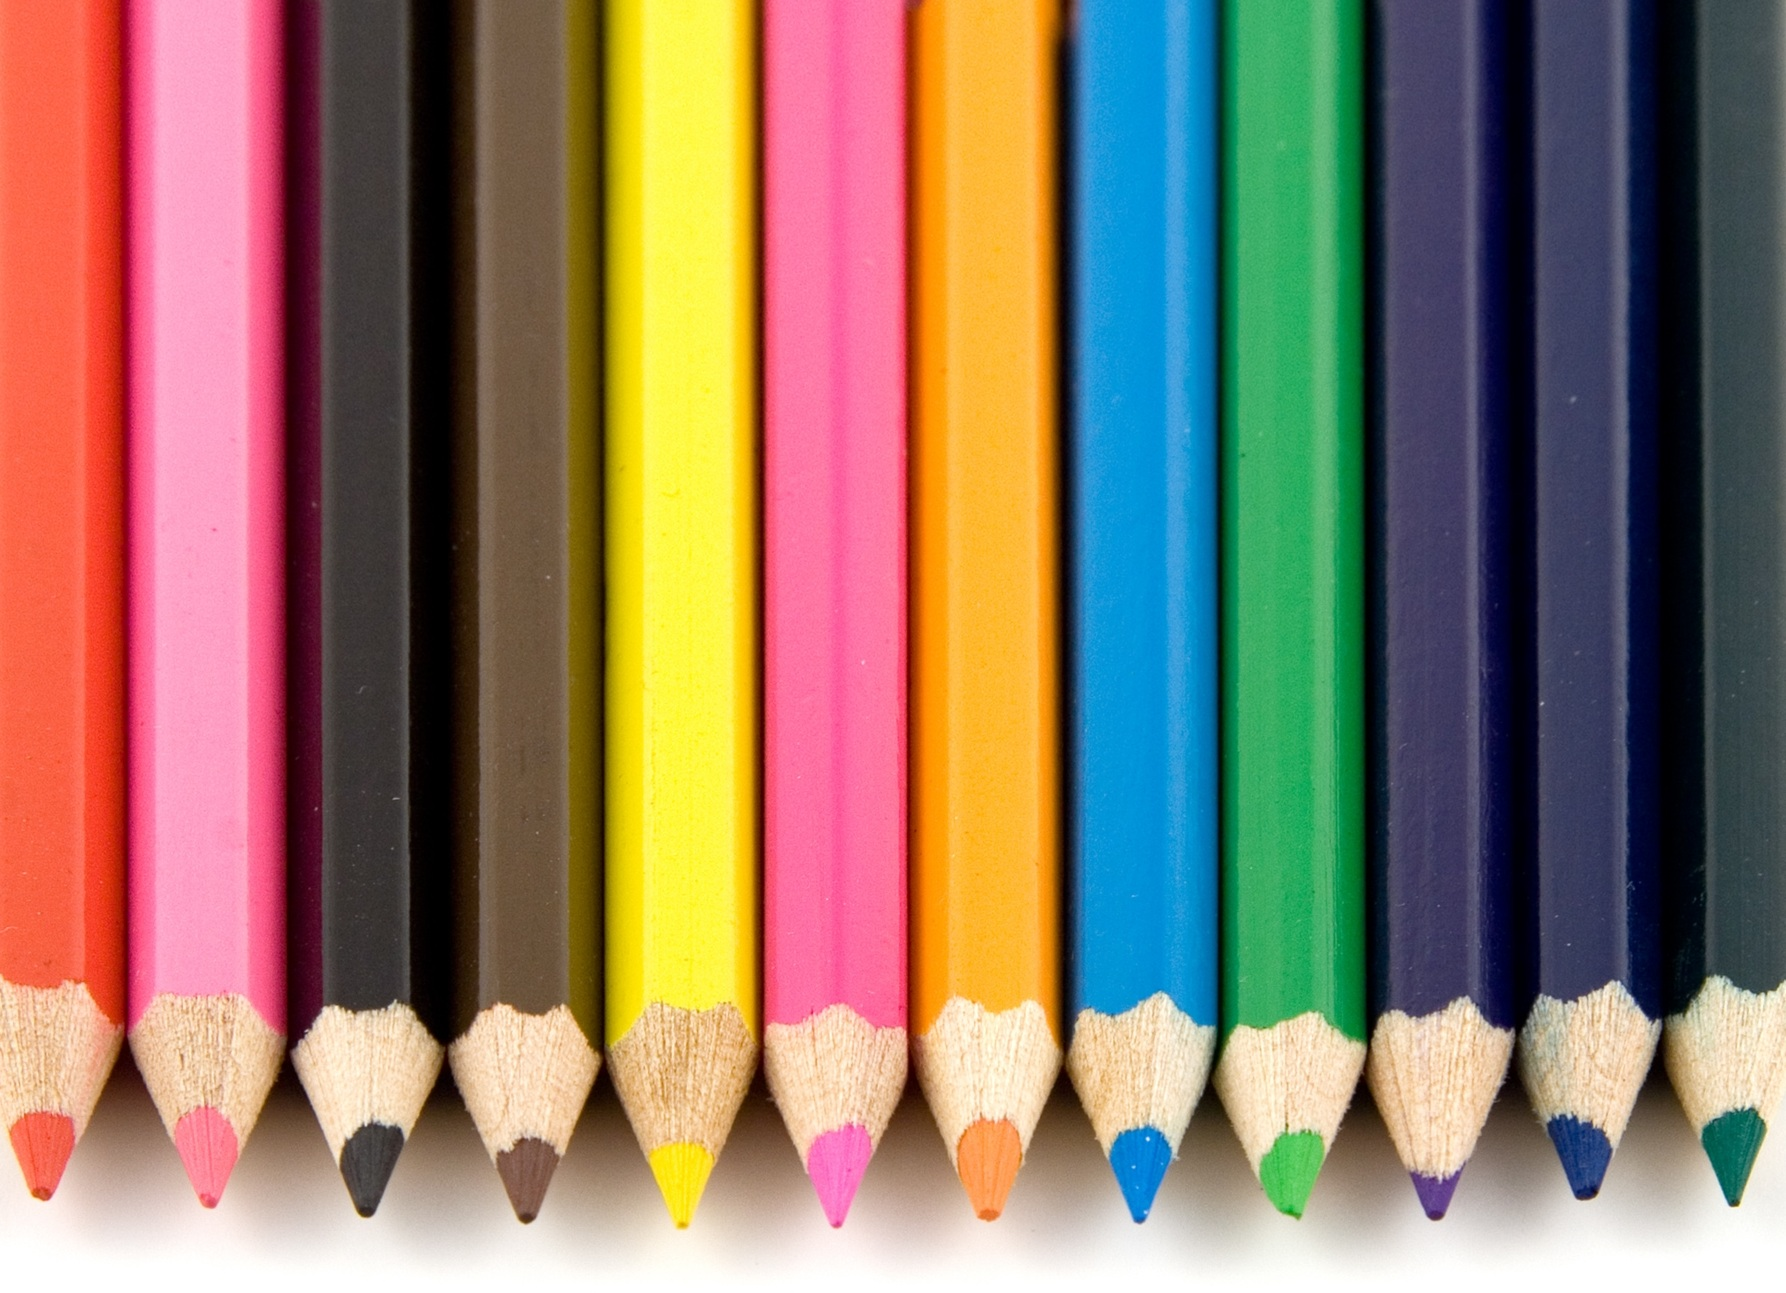 Colouring pencils - representing the many topics within Sustaining Change.